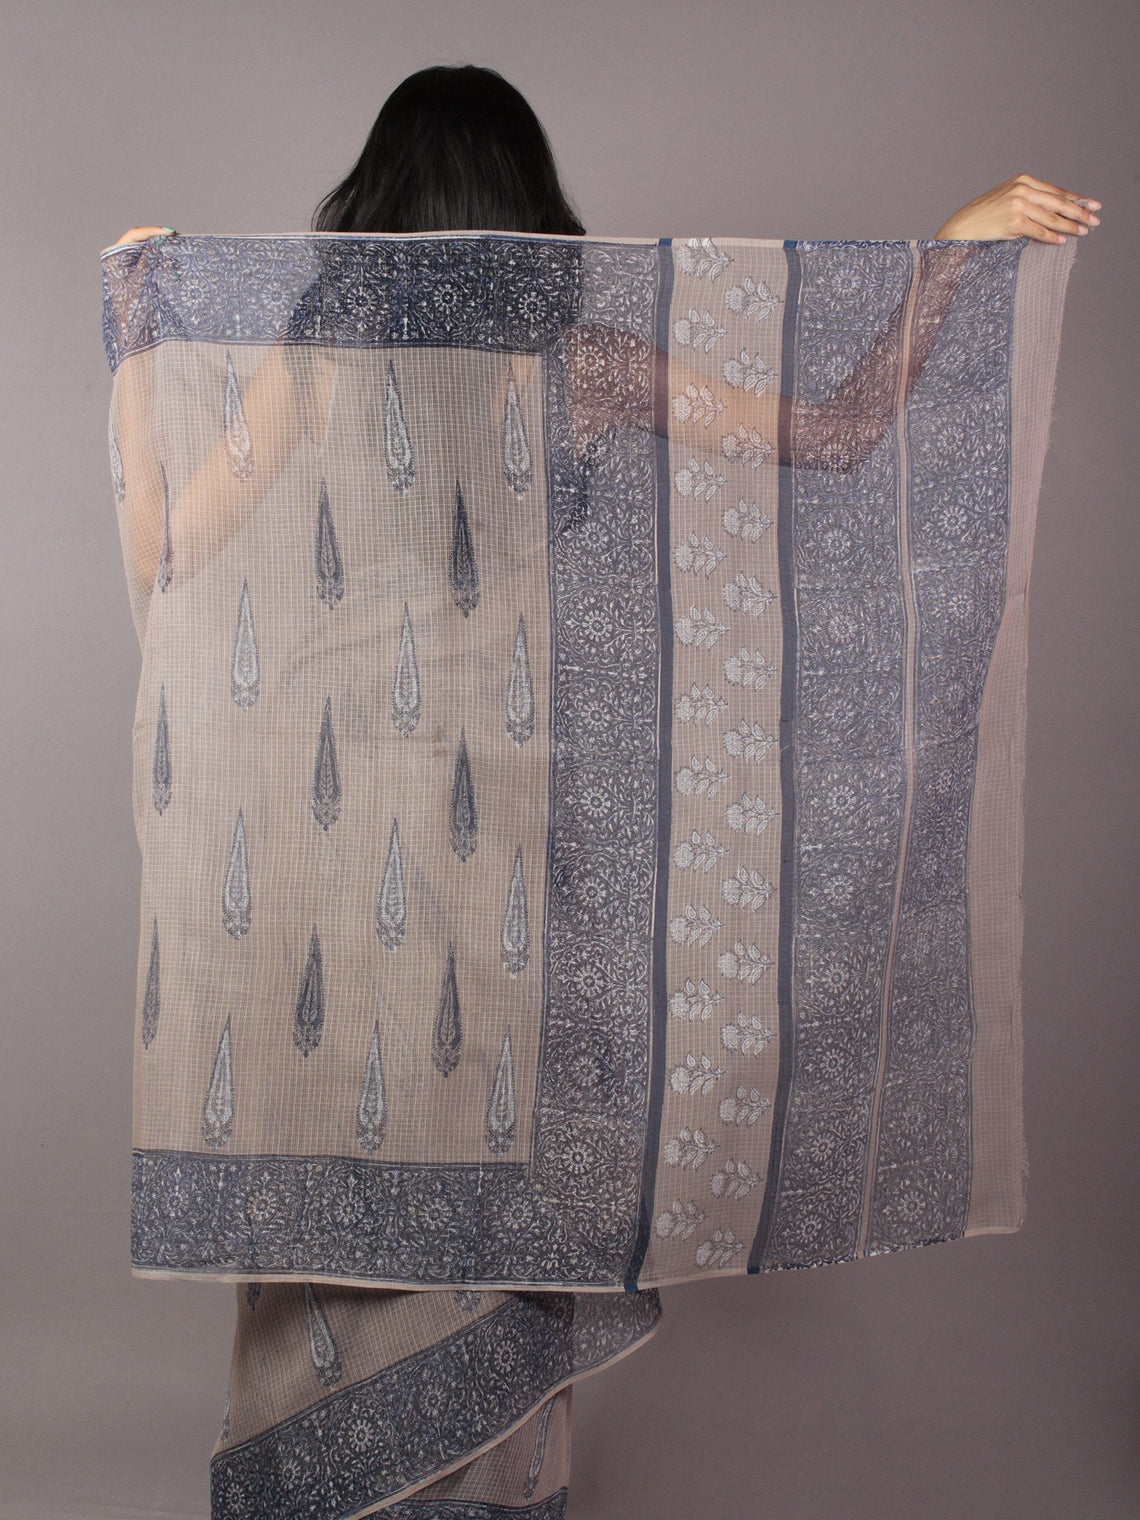 Kashish Ivory Light Blue Hand Block Printed Kota Doria Saree in Natural Colors - S031701791